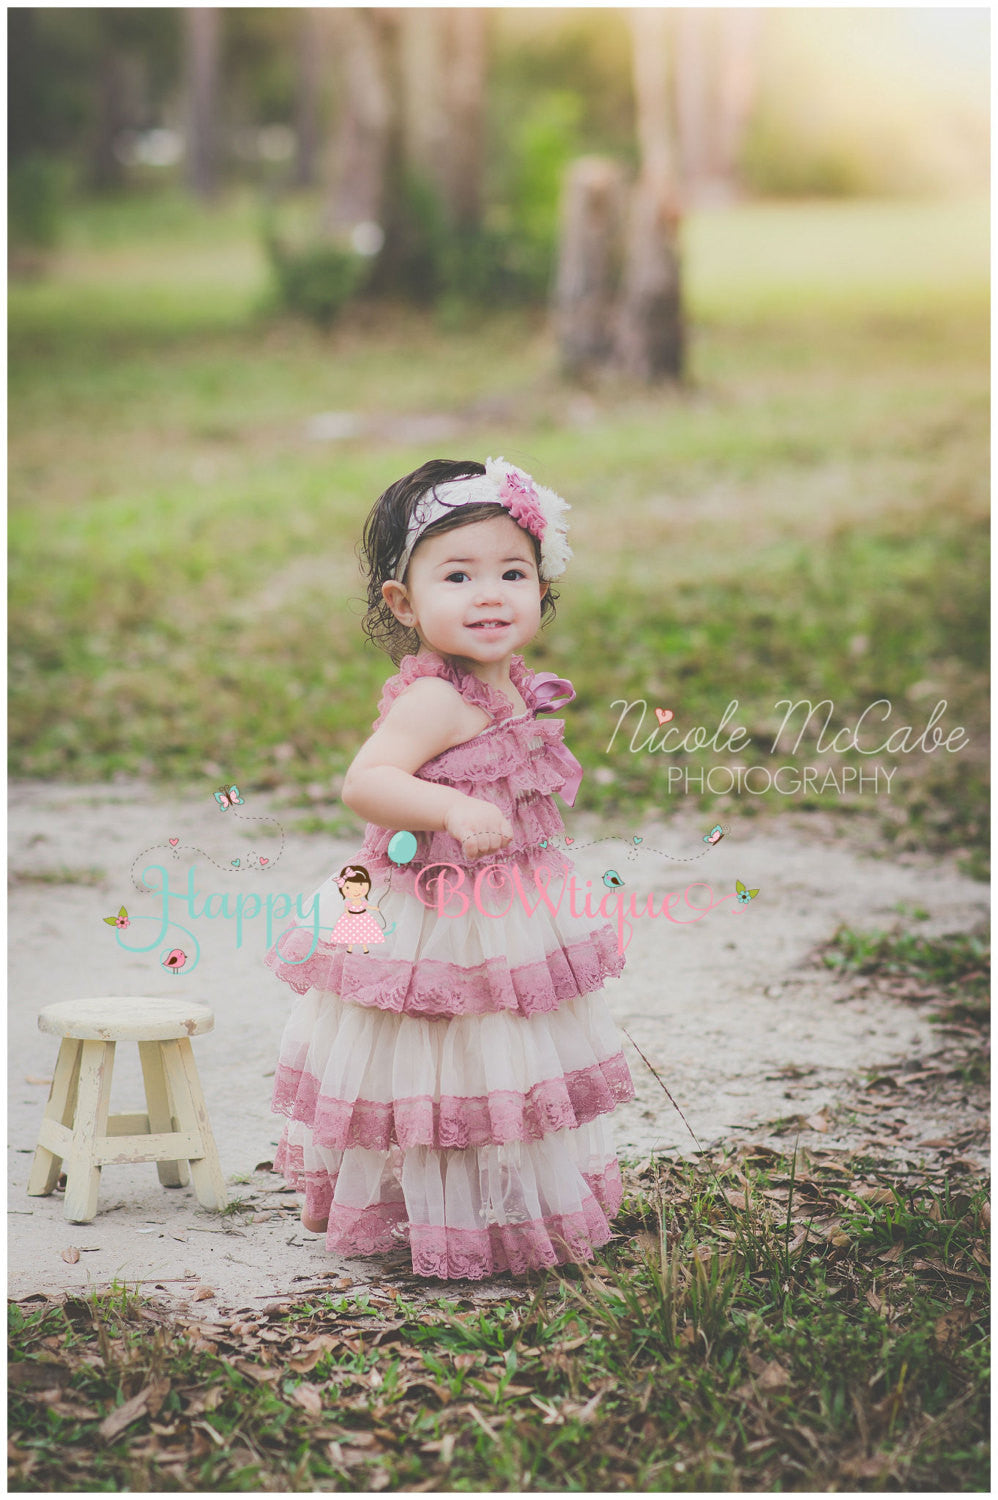 Champagne Rose Chiffon Lace Dress set - Happy BOWtique - children's clothing, Baby Girl clothing